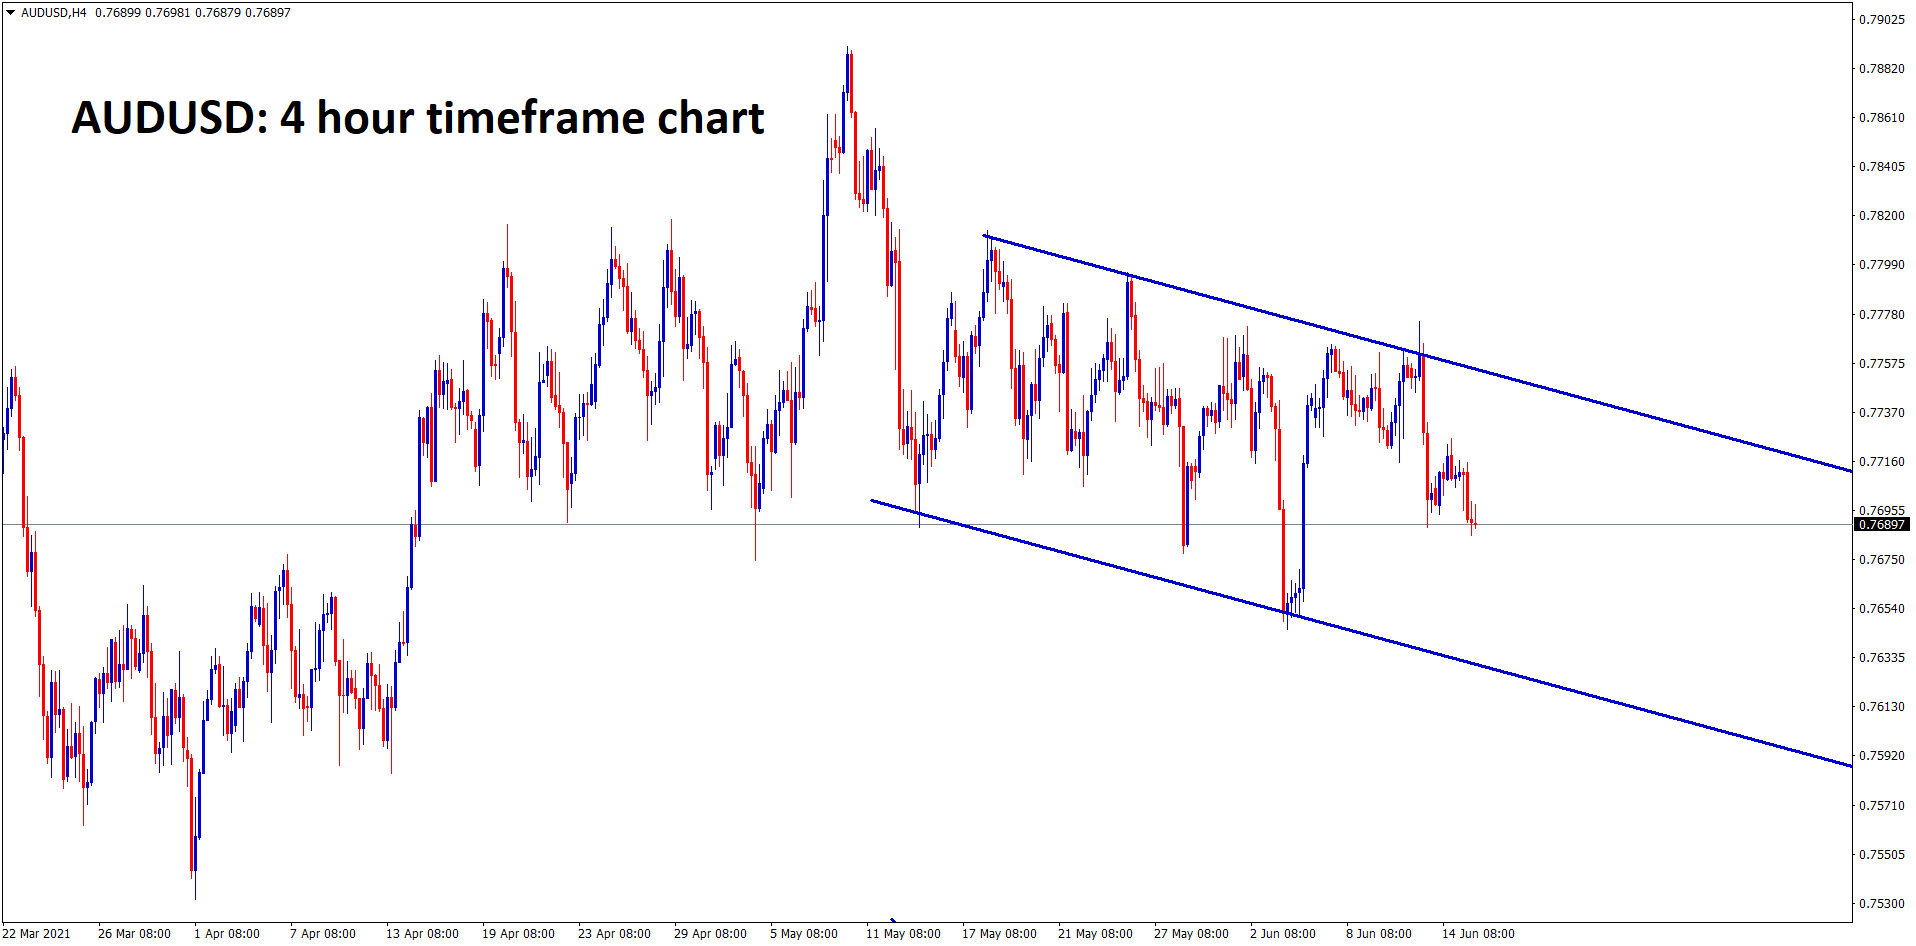 AUDUSD is moving in a descending channel ranges for a long time